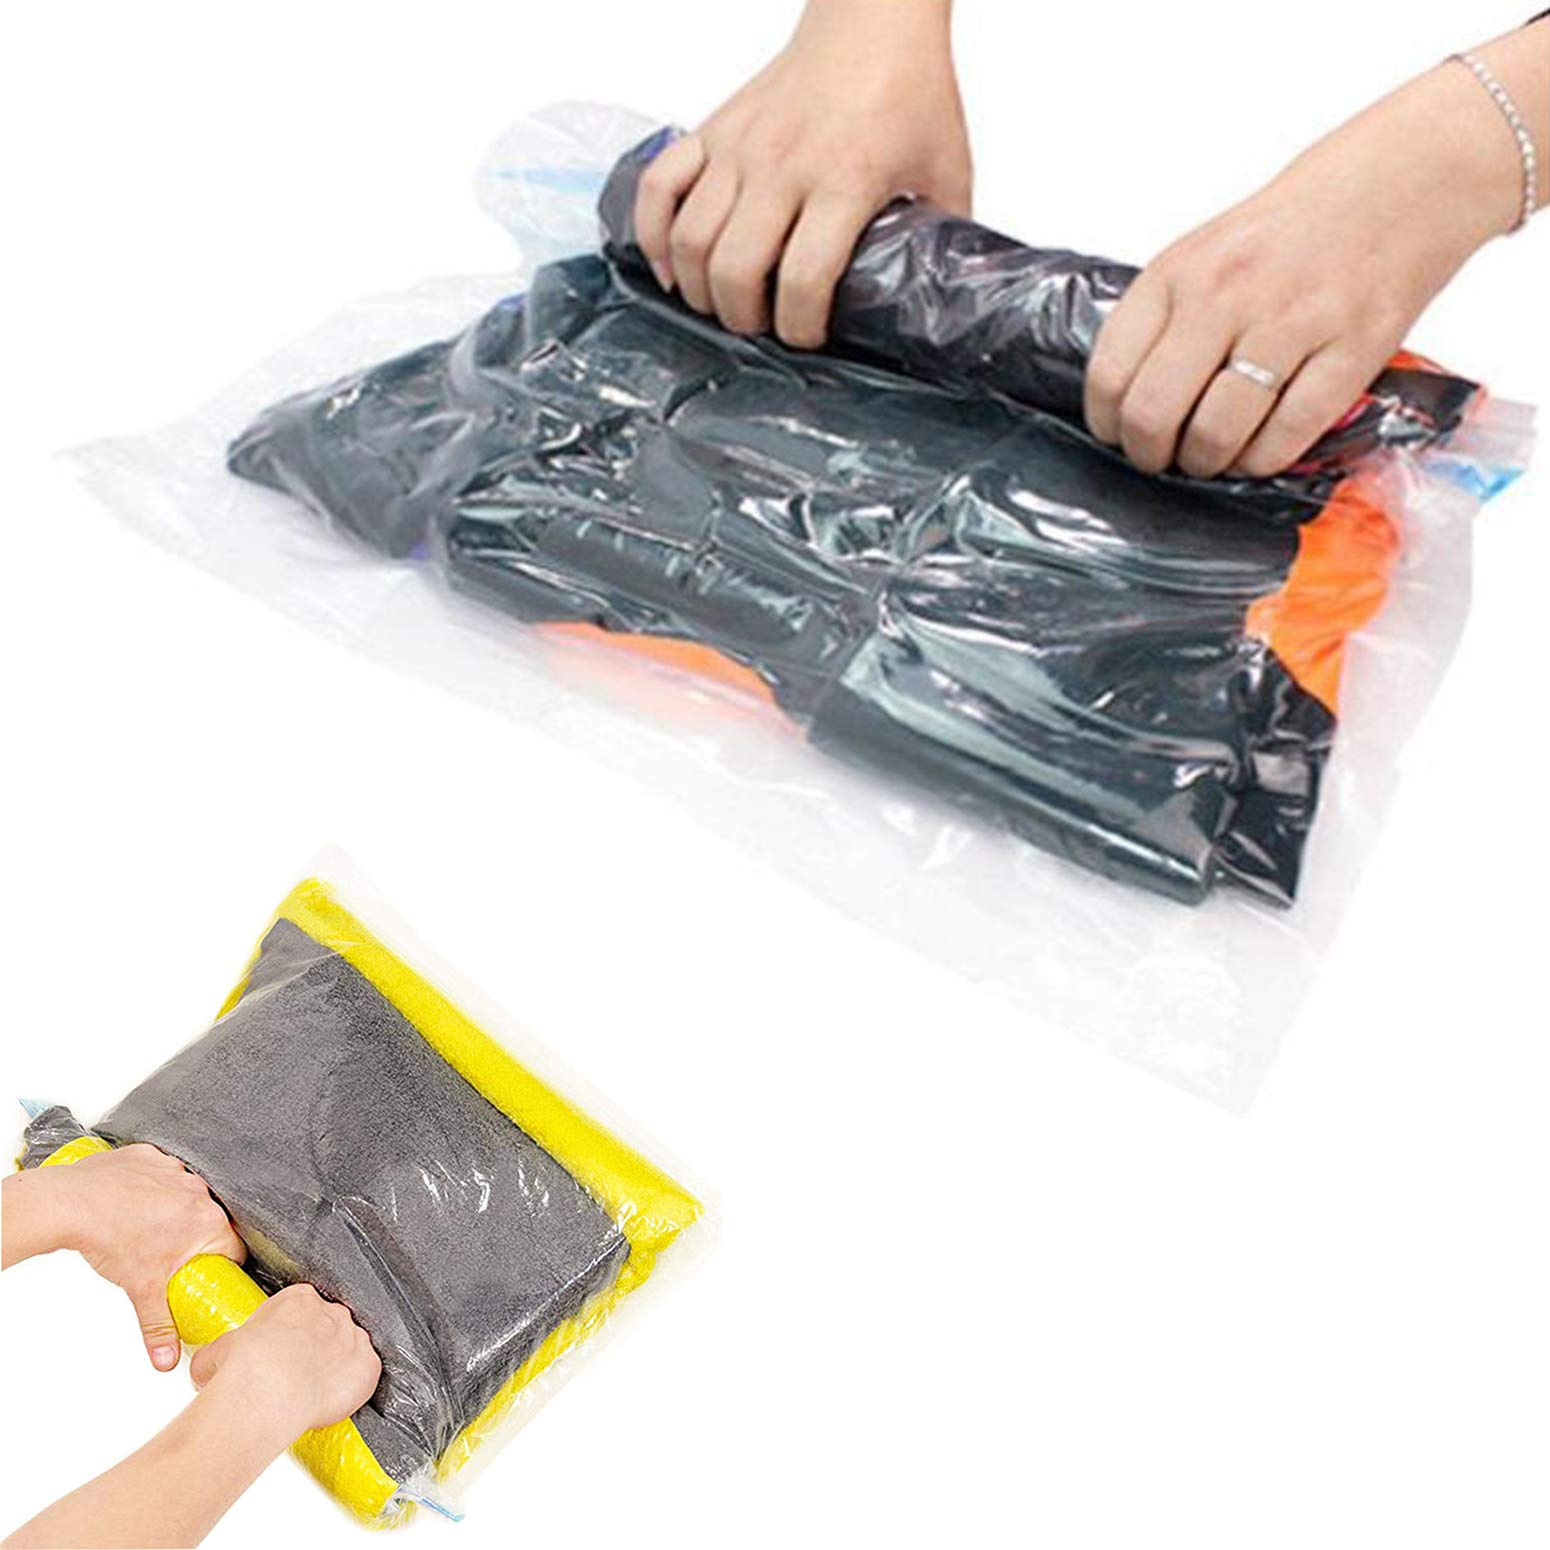 Pekaa Roll Up Travel Space Saver Storage Bag 12-Count Protect Clothes Compression Bags 6 Large (28'' X 20'') and 6 Medium (24'' X 16'')